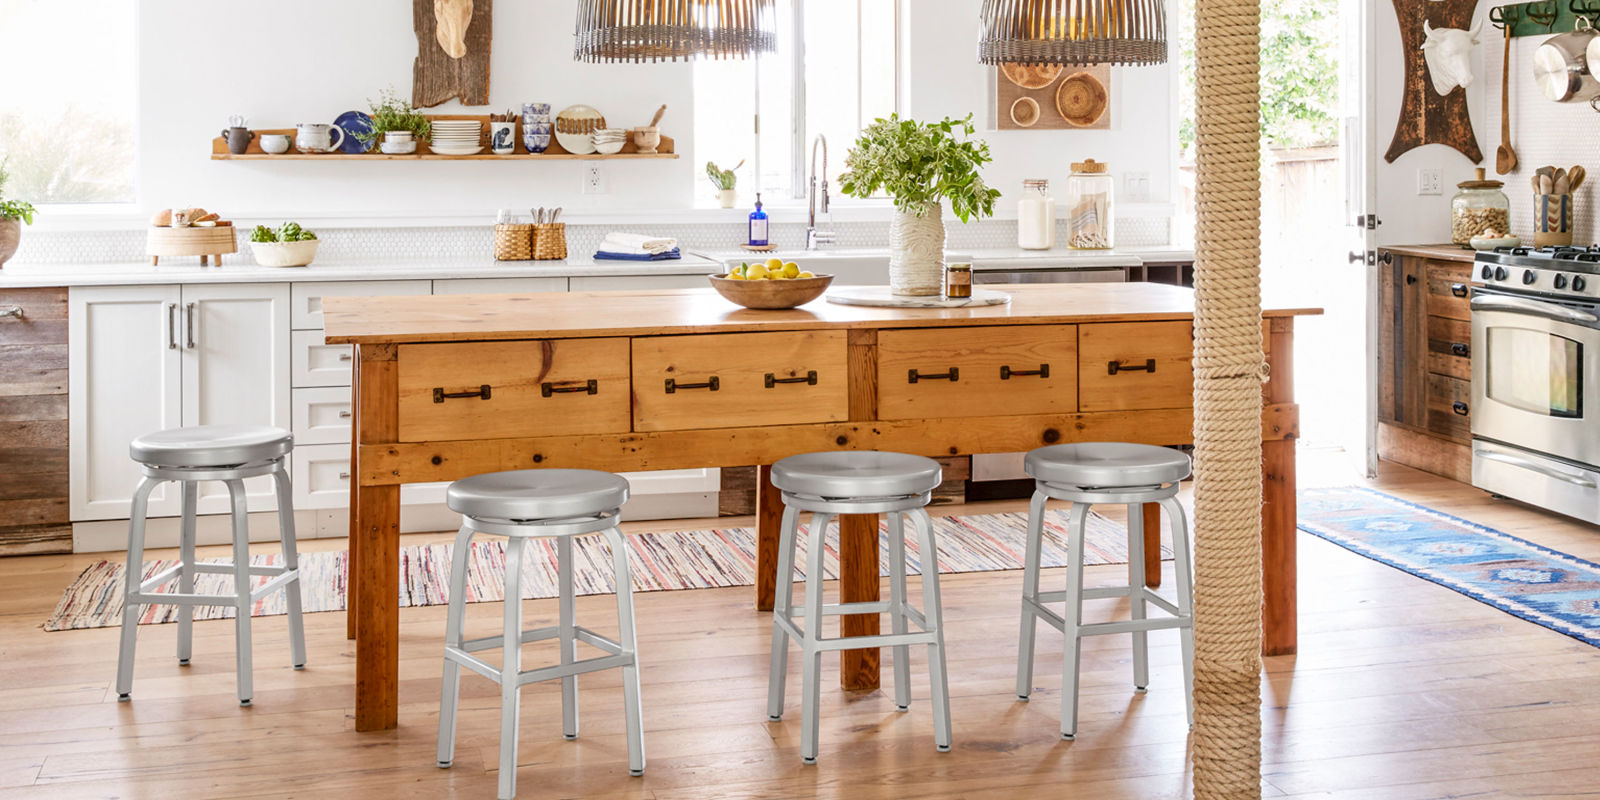 50+ Best Kitchen Island Ideas - Stylish Designs for ...